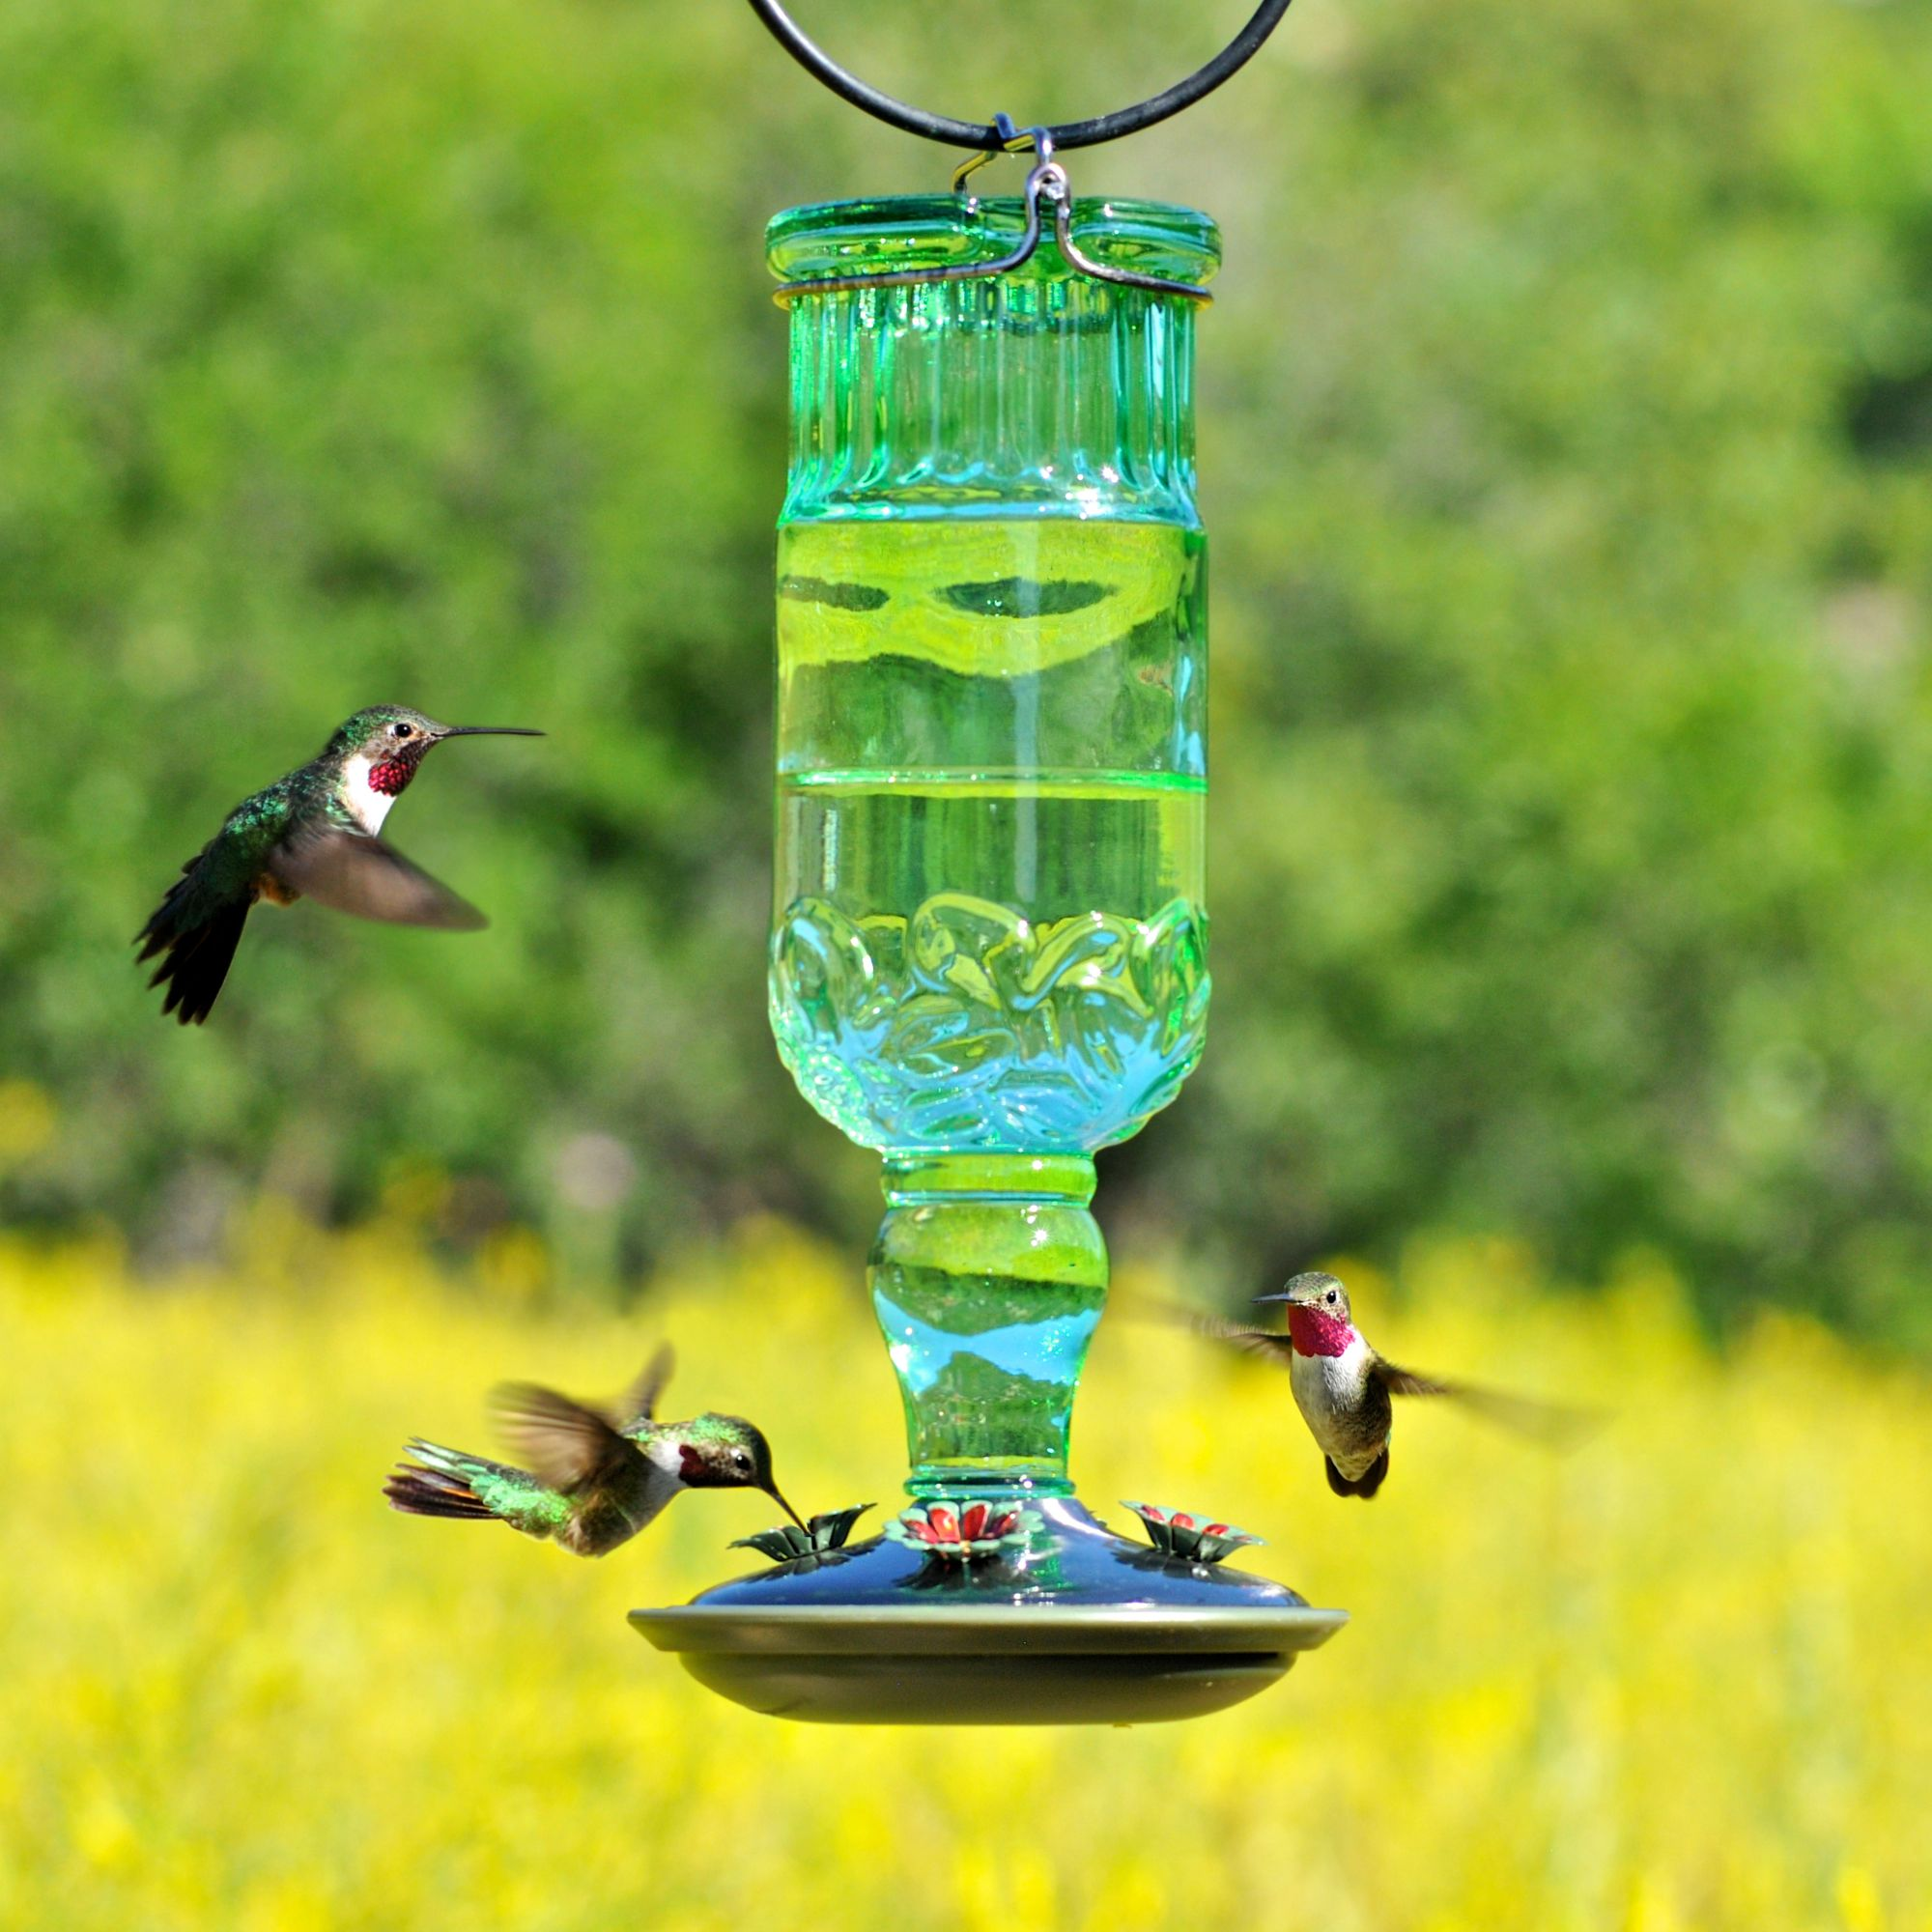 set of hummingbird zoom com duncraft sphere feeder humingbird